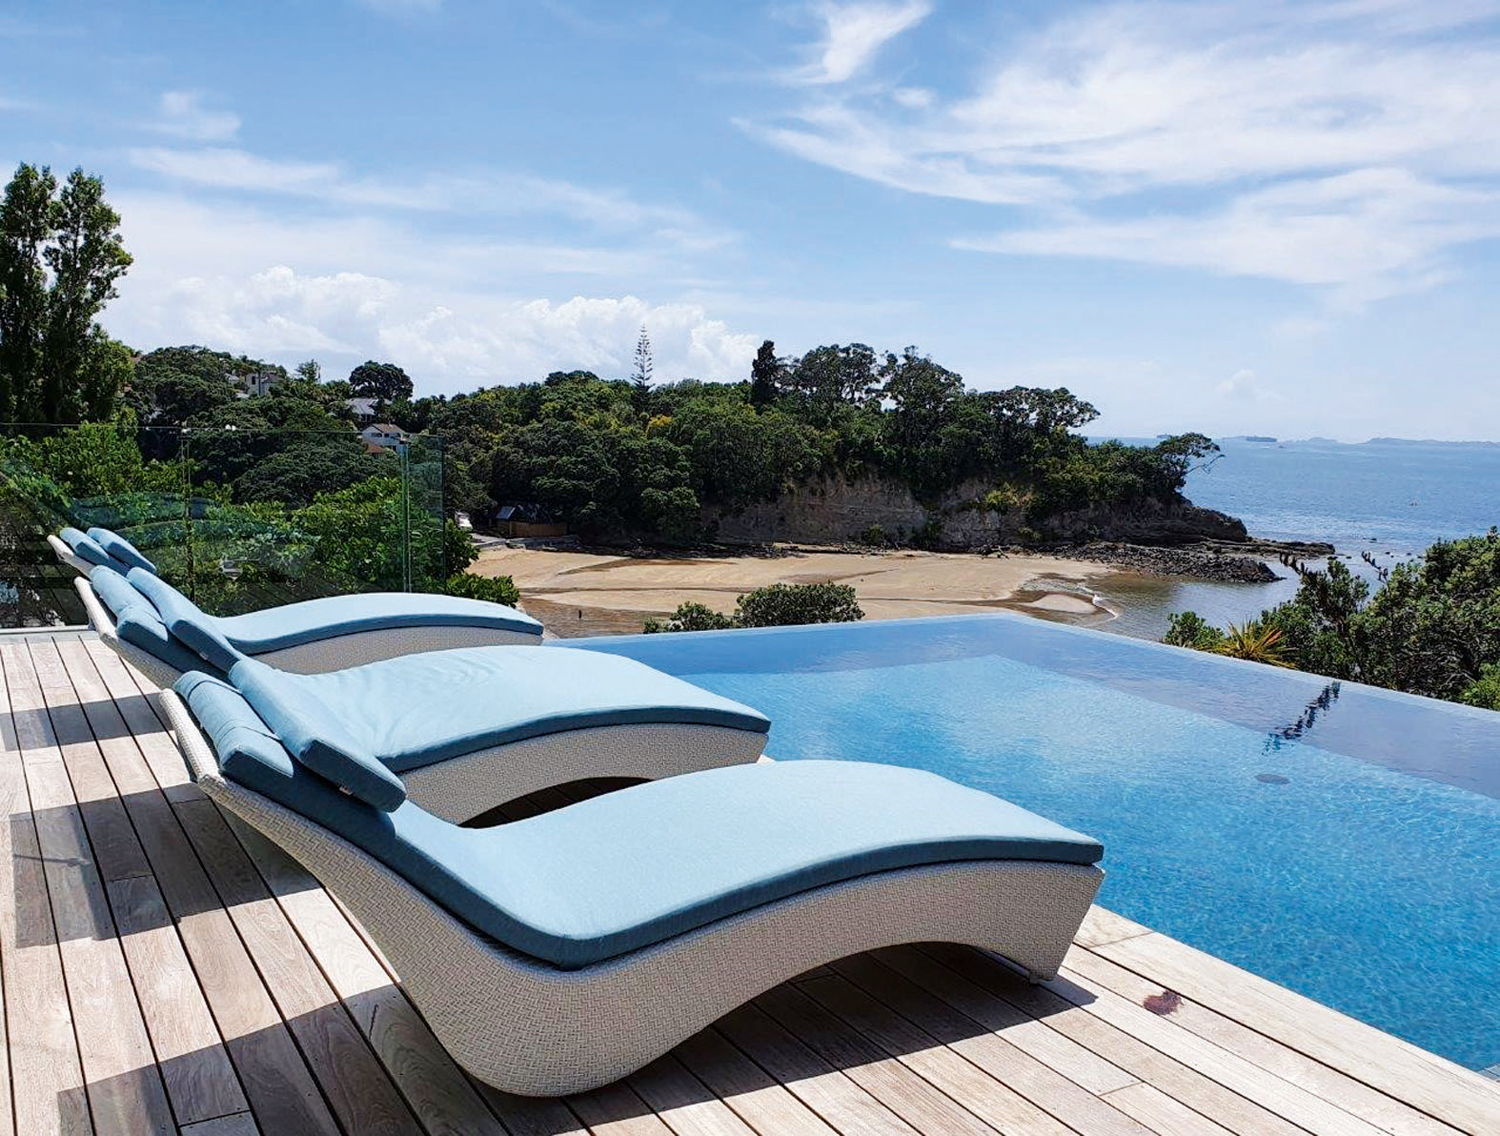 This handwoven artisan outdoor furniture offers the best in comfort and style